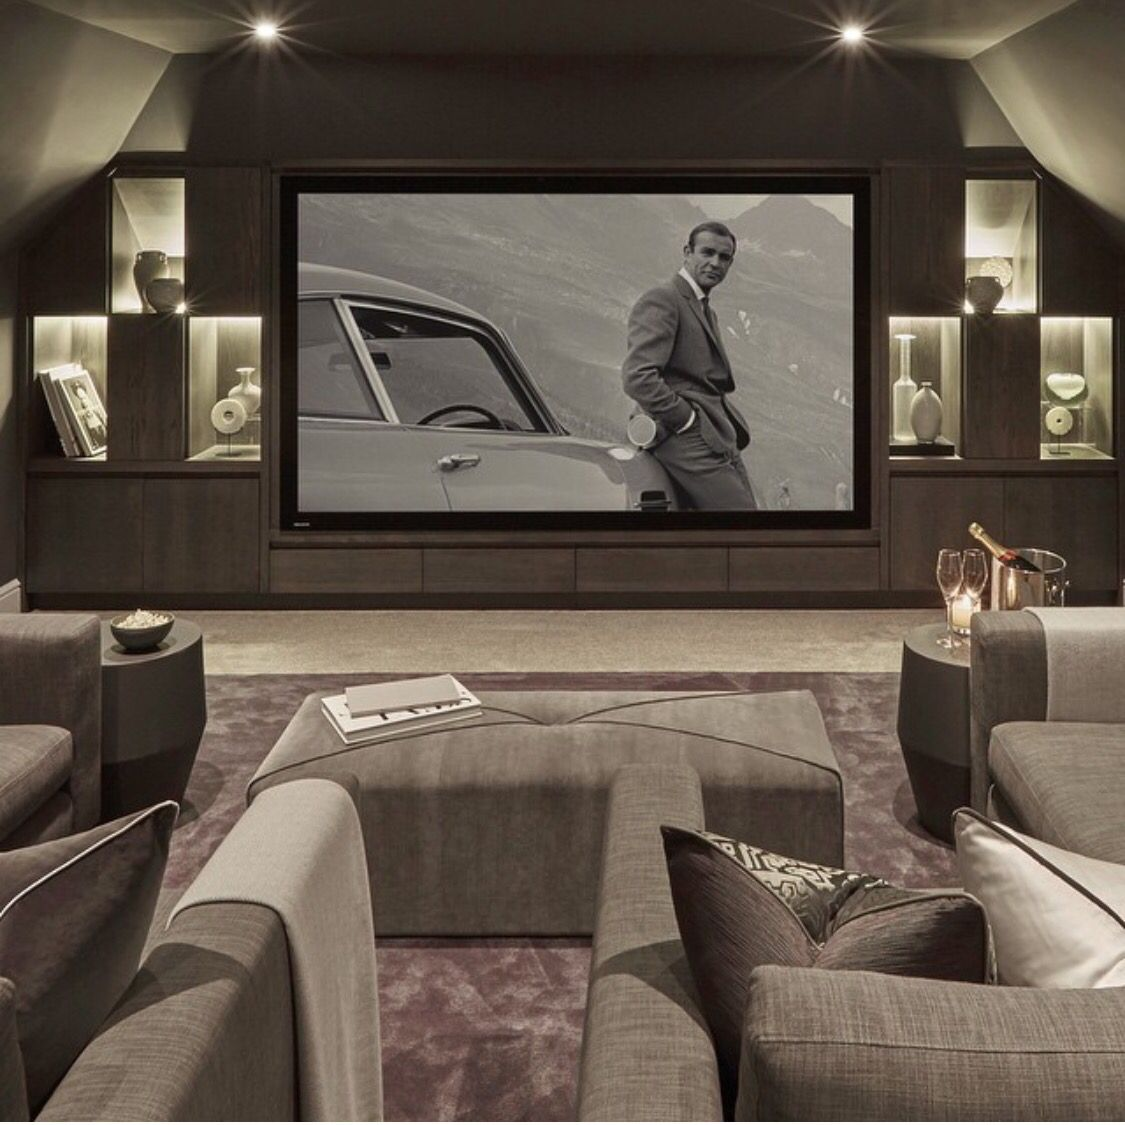 Living Room Theater Fau Phone Number: Theatre Room Design Idea